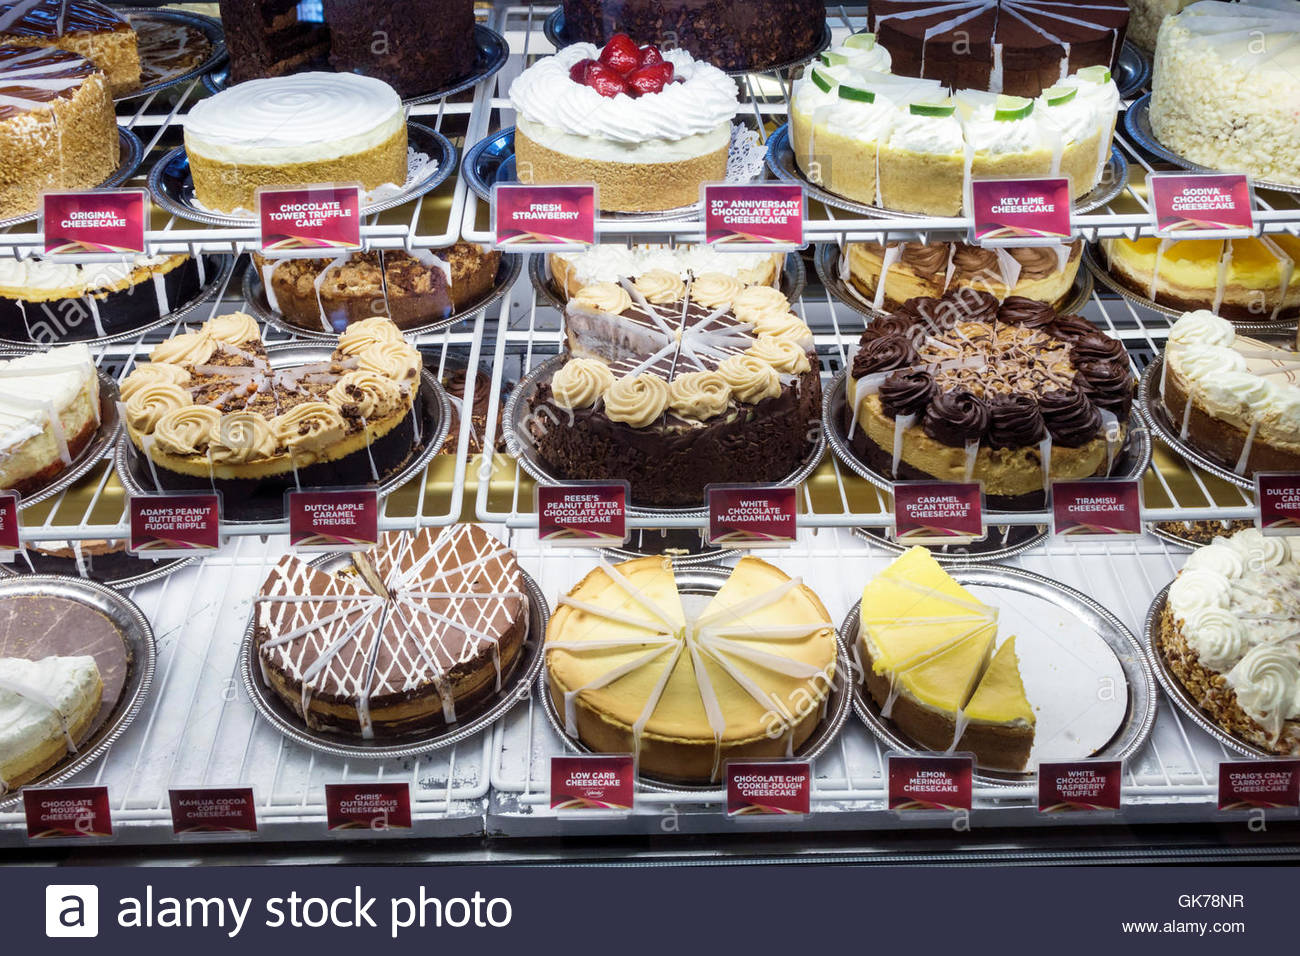 Cheesecake Factory Photos Cheesecake Factory Images Alamy